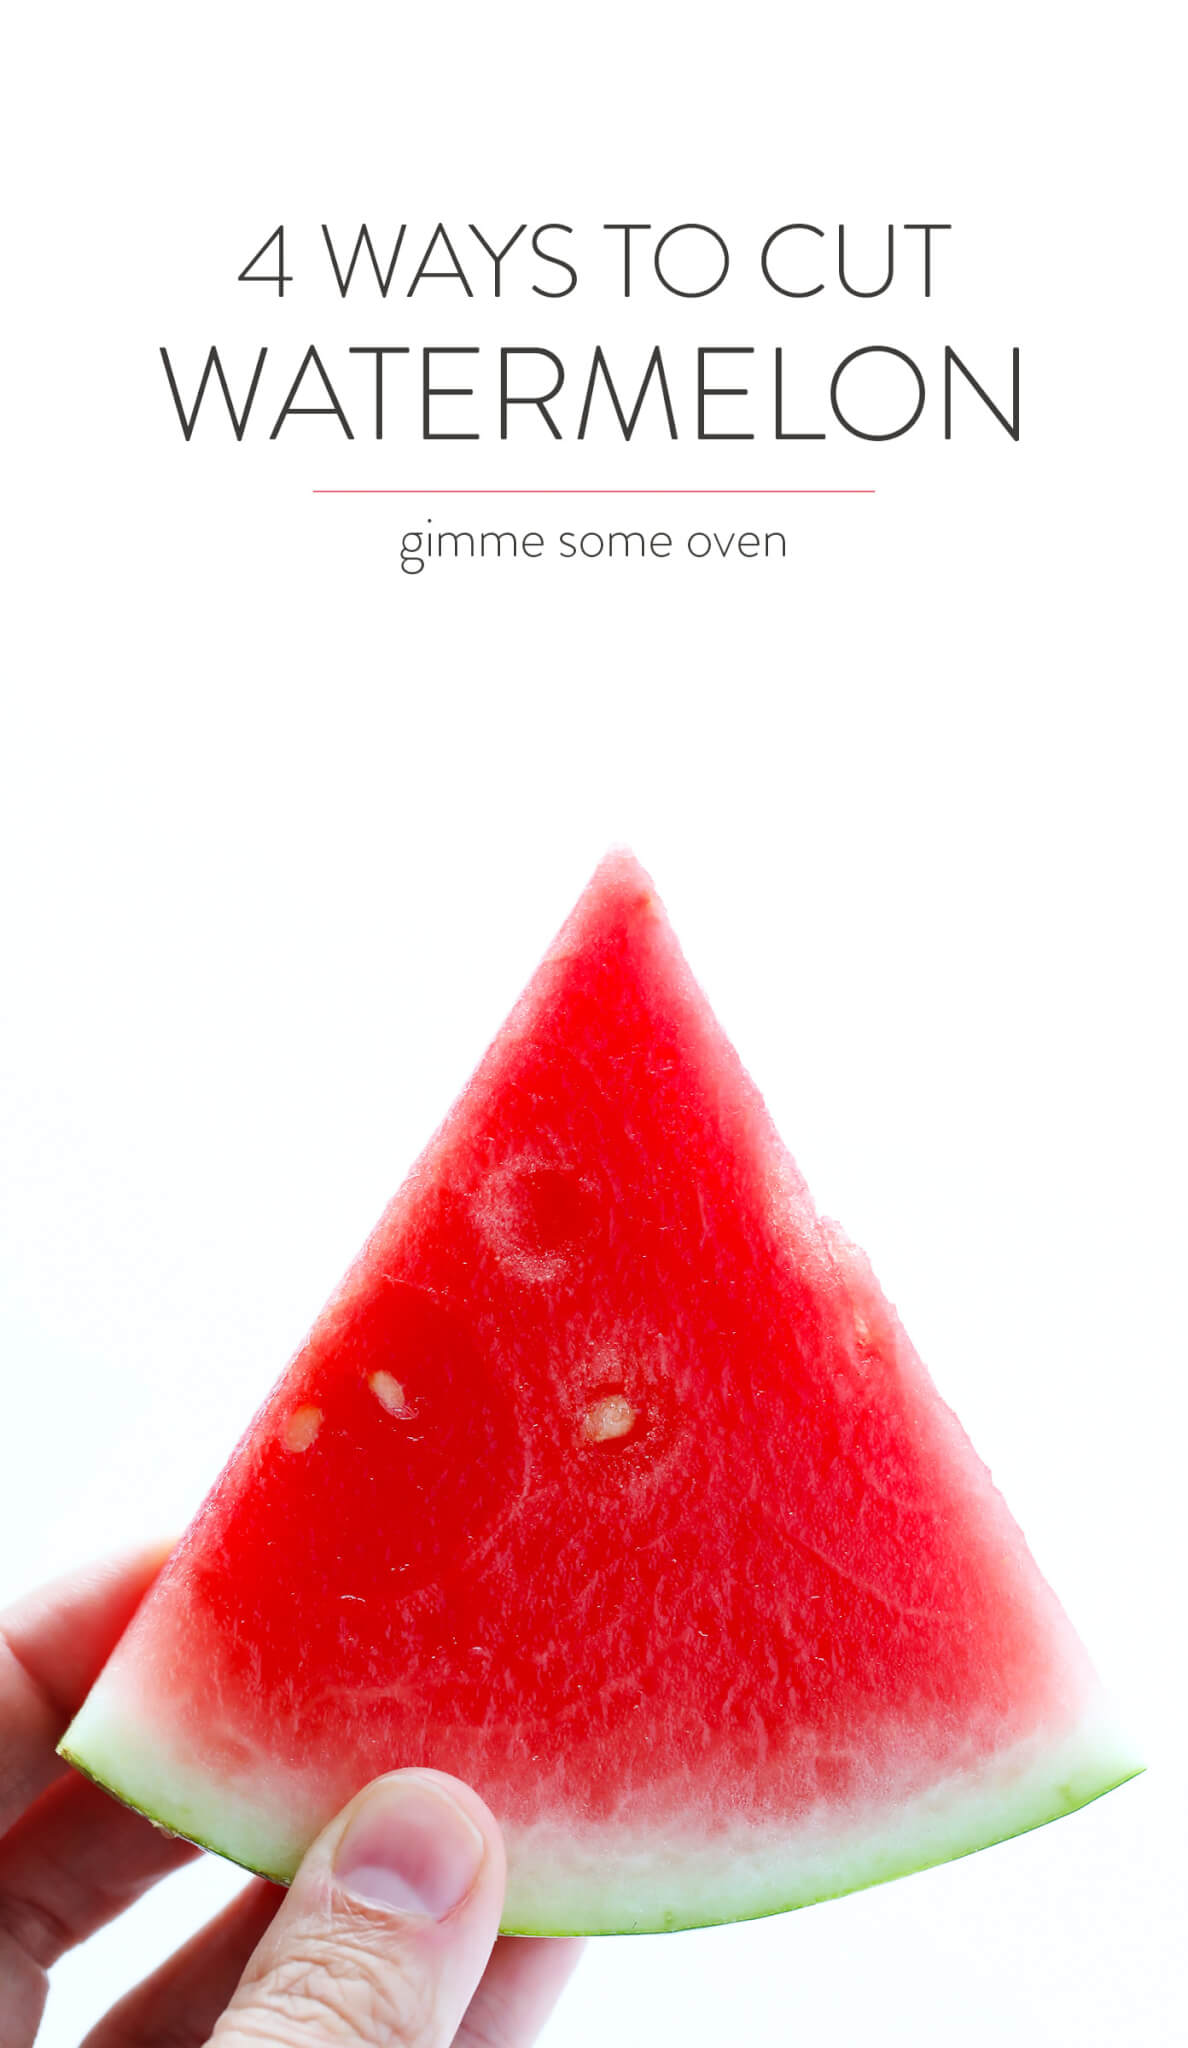 Learn how to cut watermelon 4 different ways (and safely!) with this quick 1-minute video. | gimmesomeoven.com